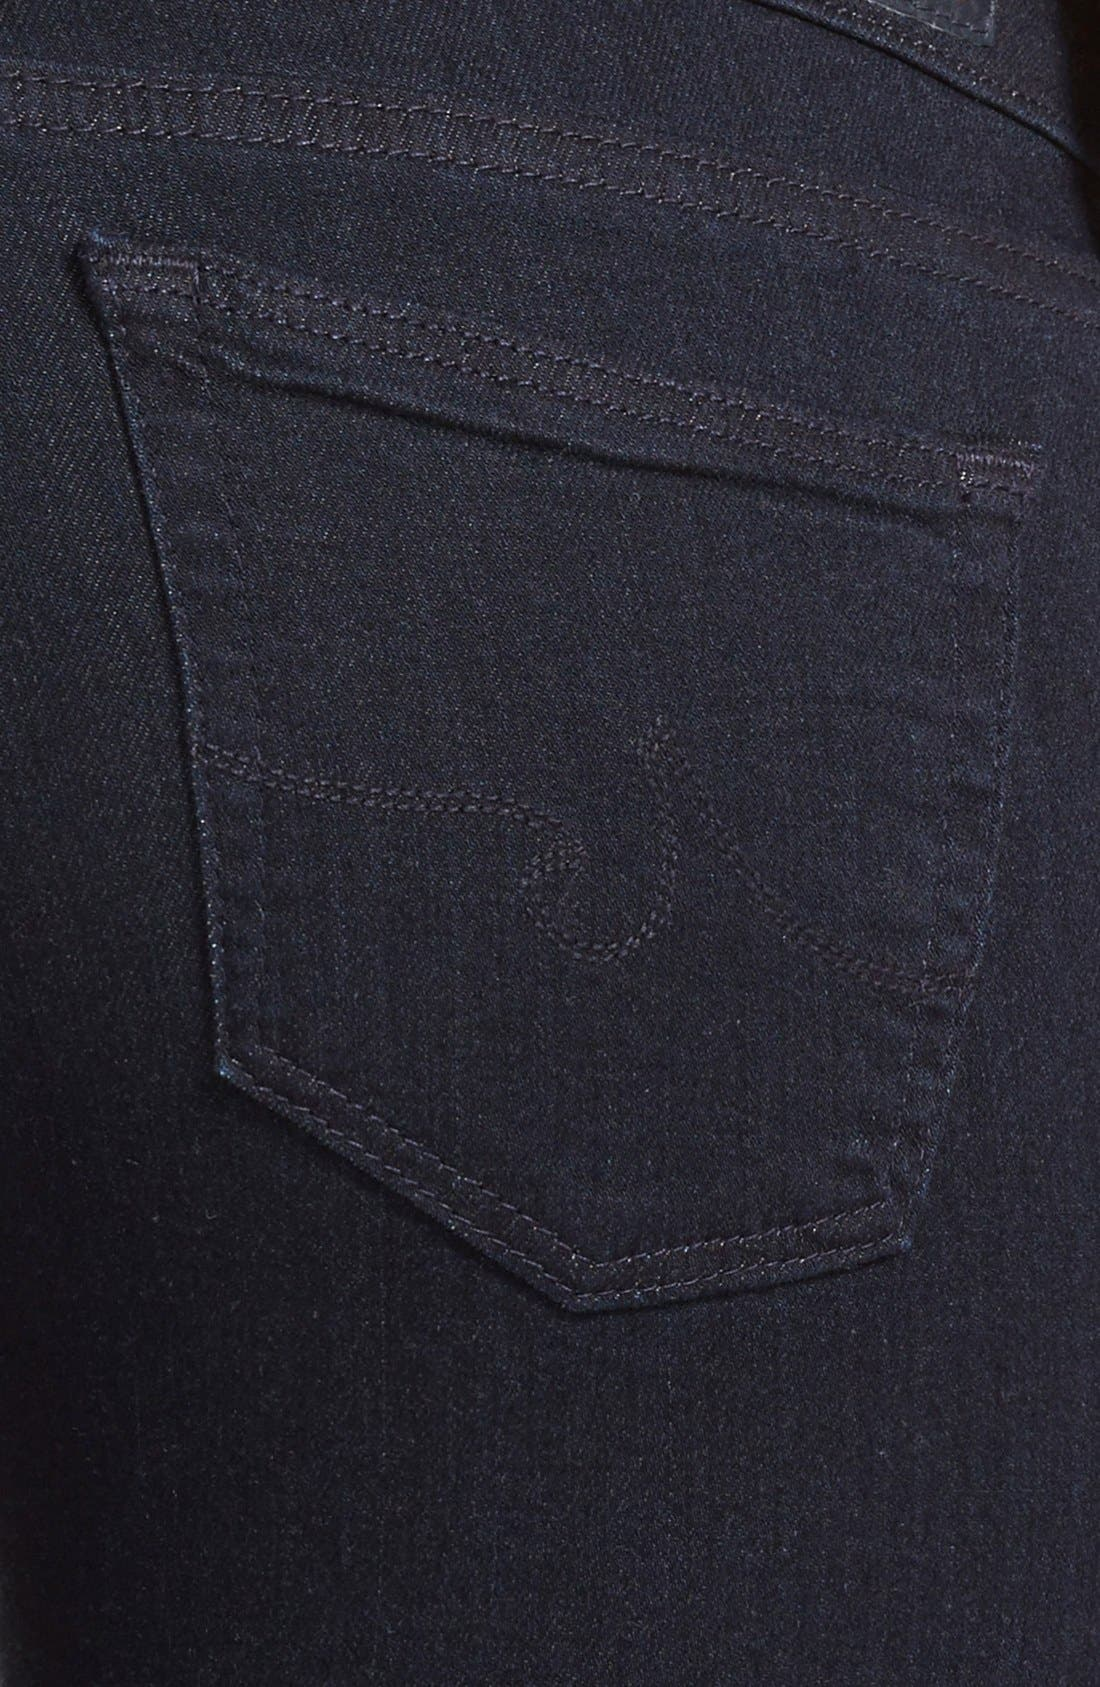 Alternate Image 3  - AG 'Ballad' Slim Bootcut Stretch Denim Jeans (Clyde)